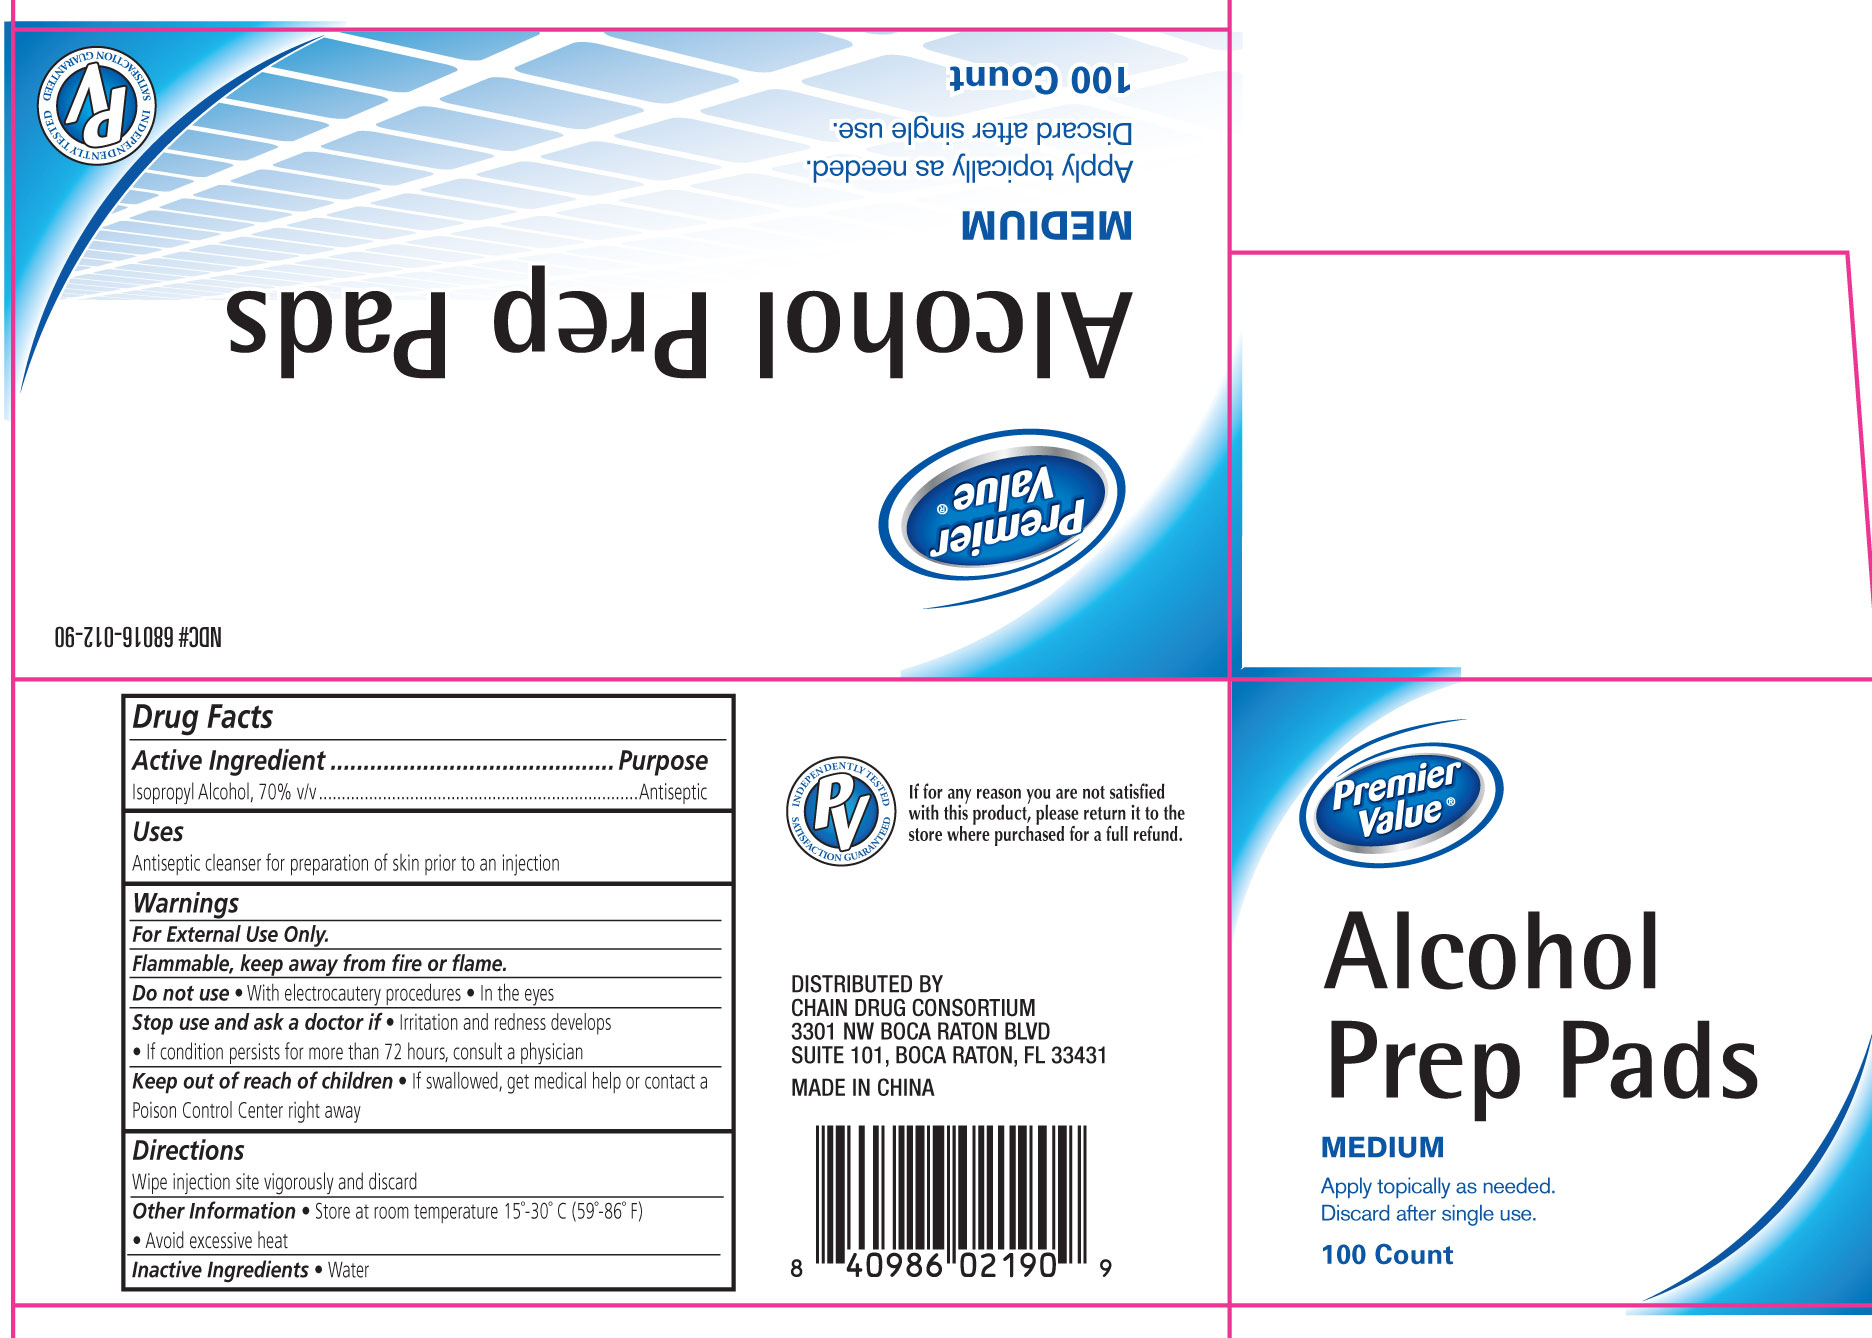 Alcohol Prep (Isopropyl Alcohol) Swab [Chain Drug Consortium, Llc]